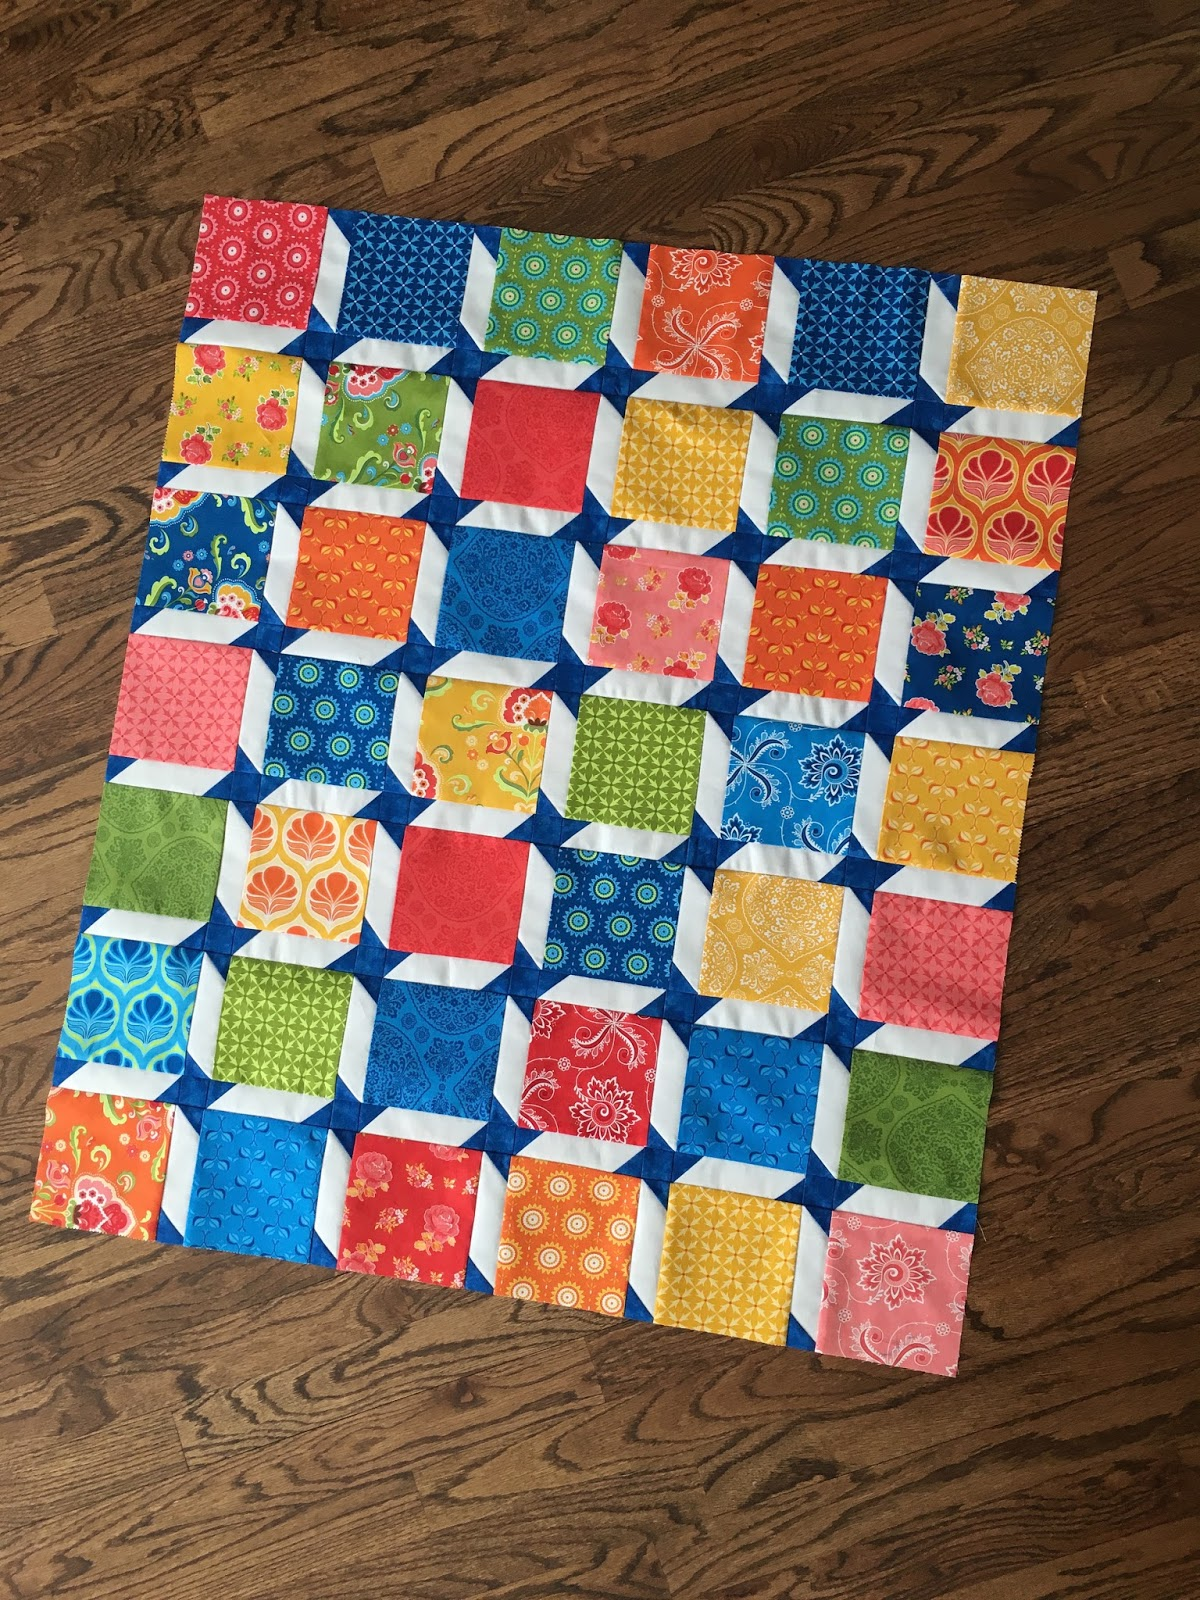 JulieQ Quilts: My Baby Quilt Version of The Friendship Star ... : sashing on quilts - Adamdwight.com